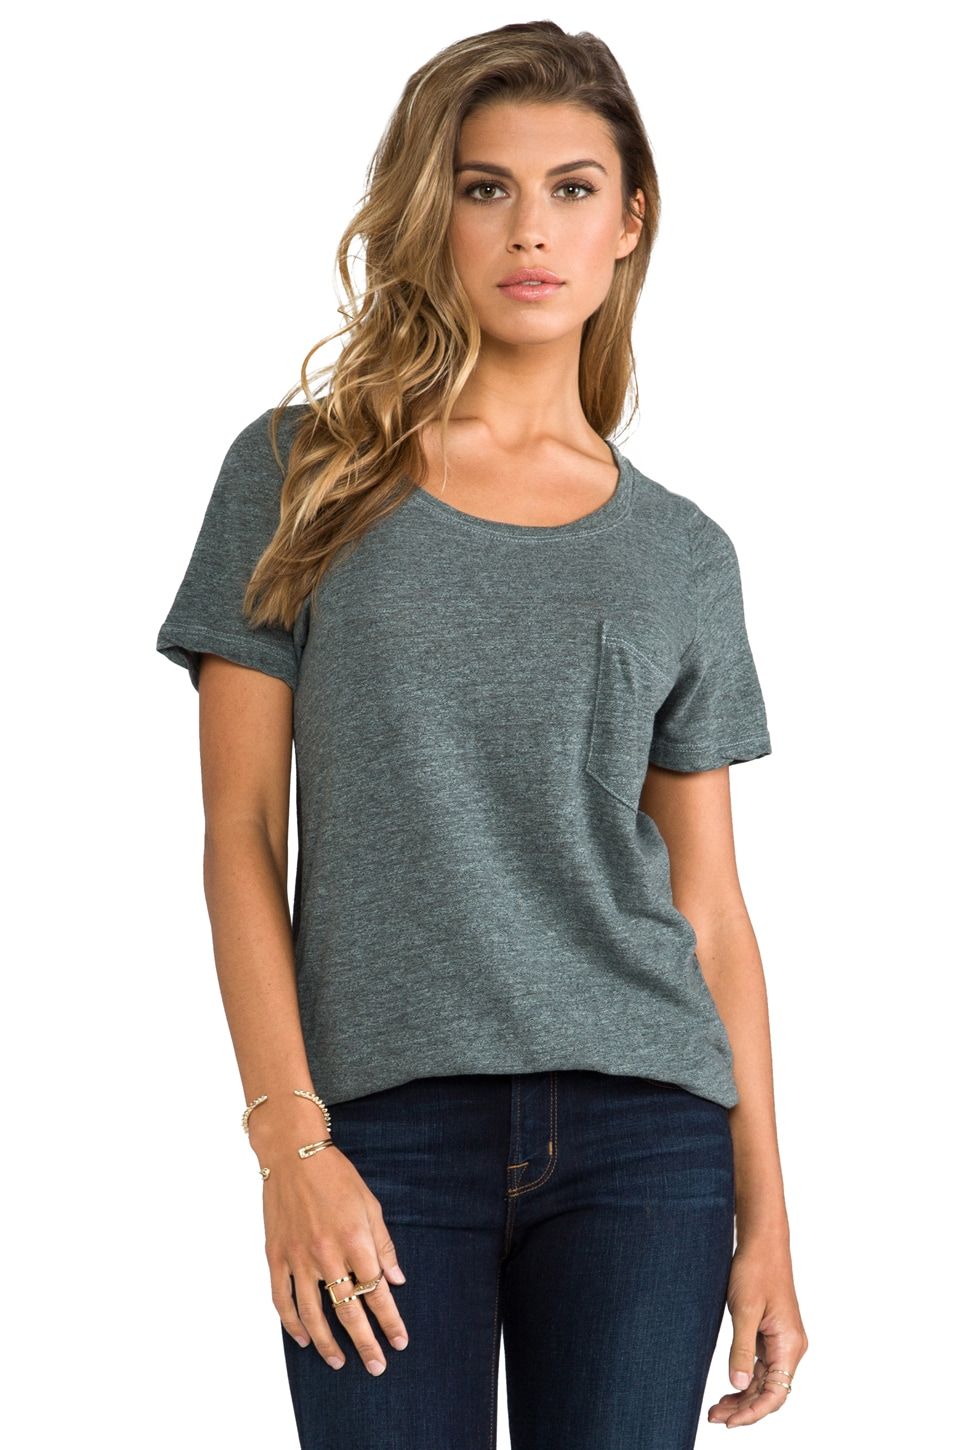 MONROW Half and Half Pocket Tee in Sage